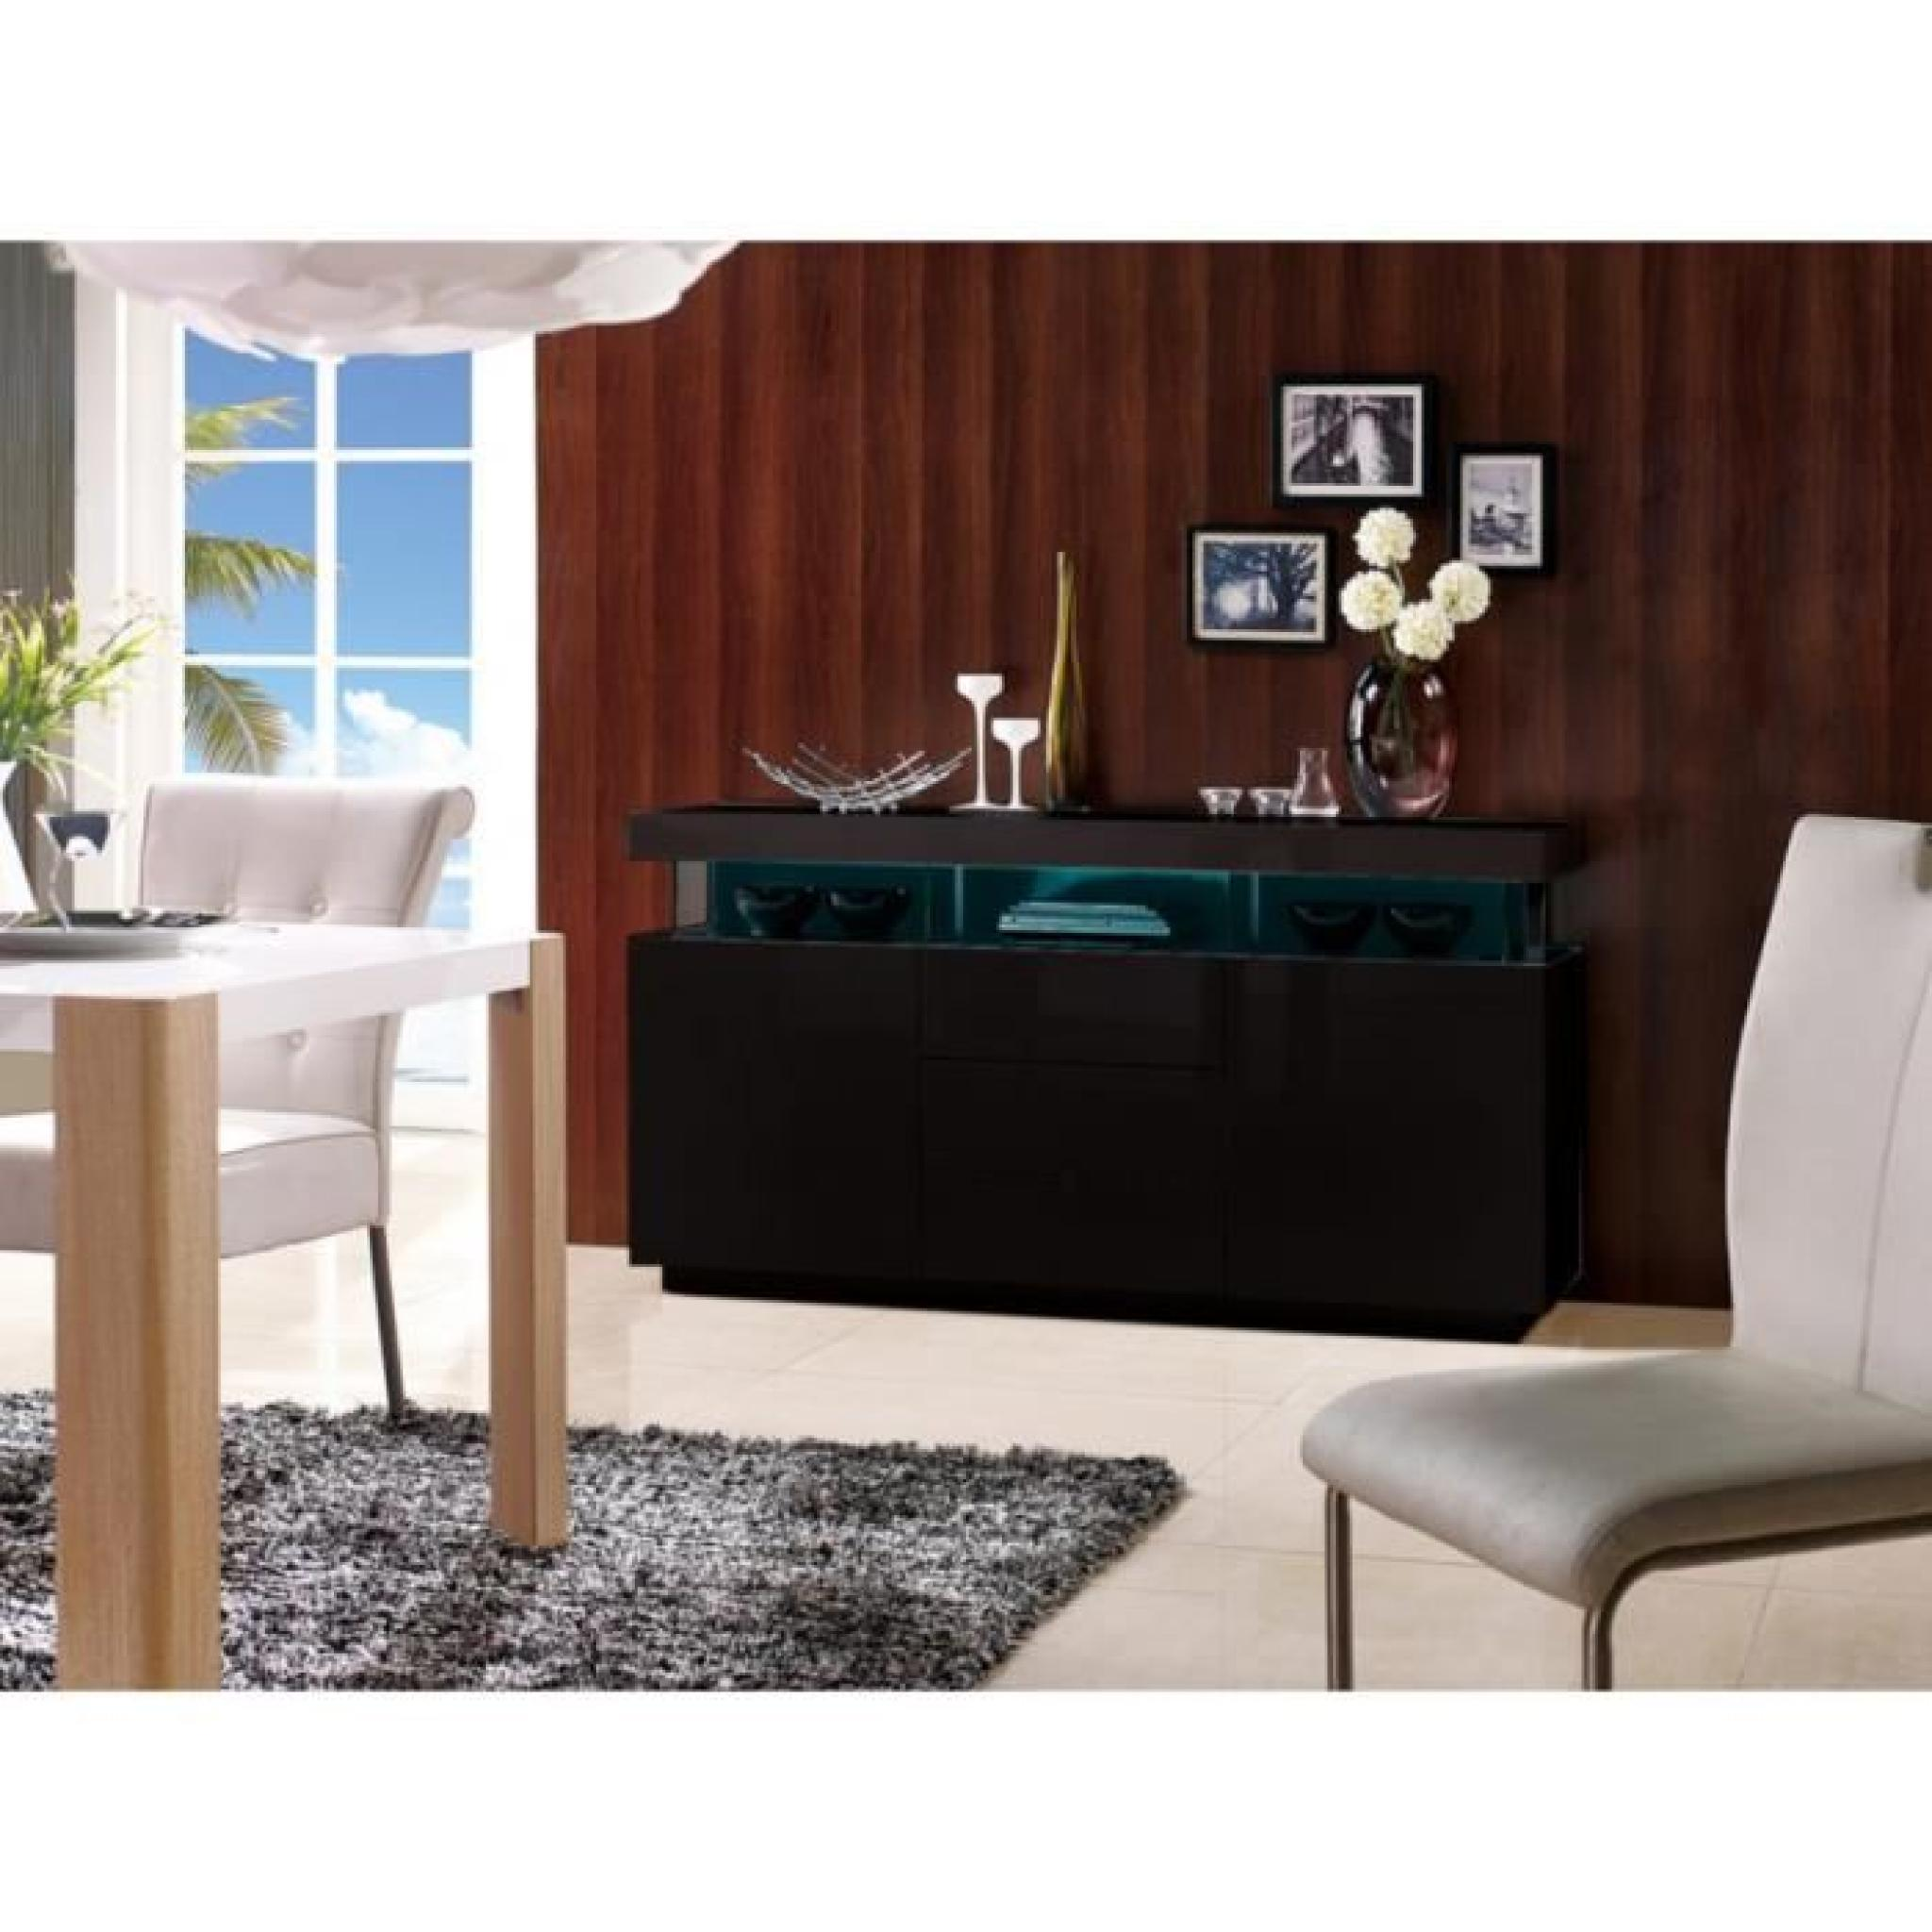 buffet laque pas cher maison design. Black Bedroom Furniture Sets. Home Design Ideas